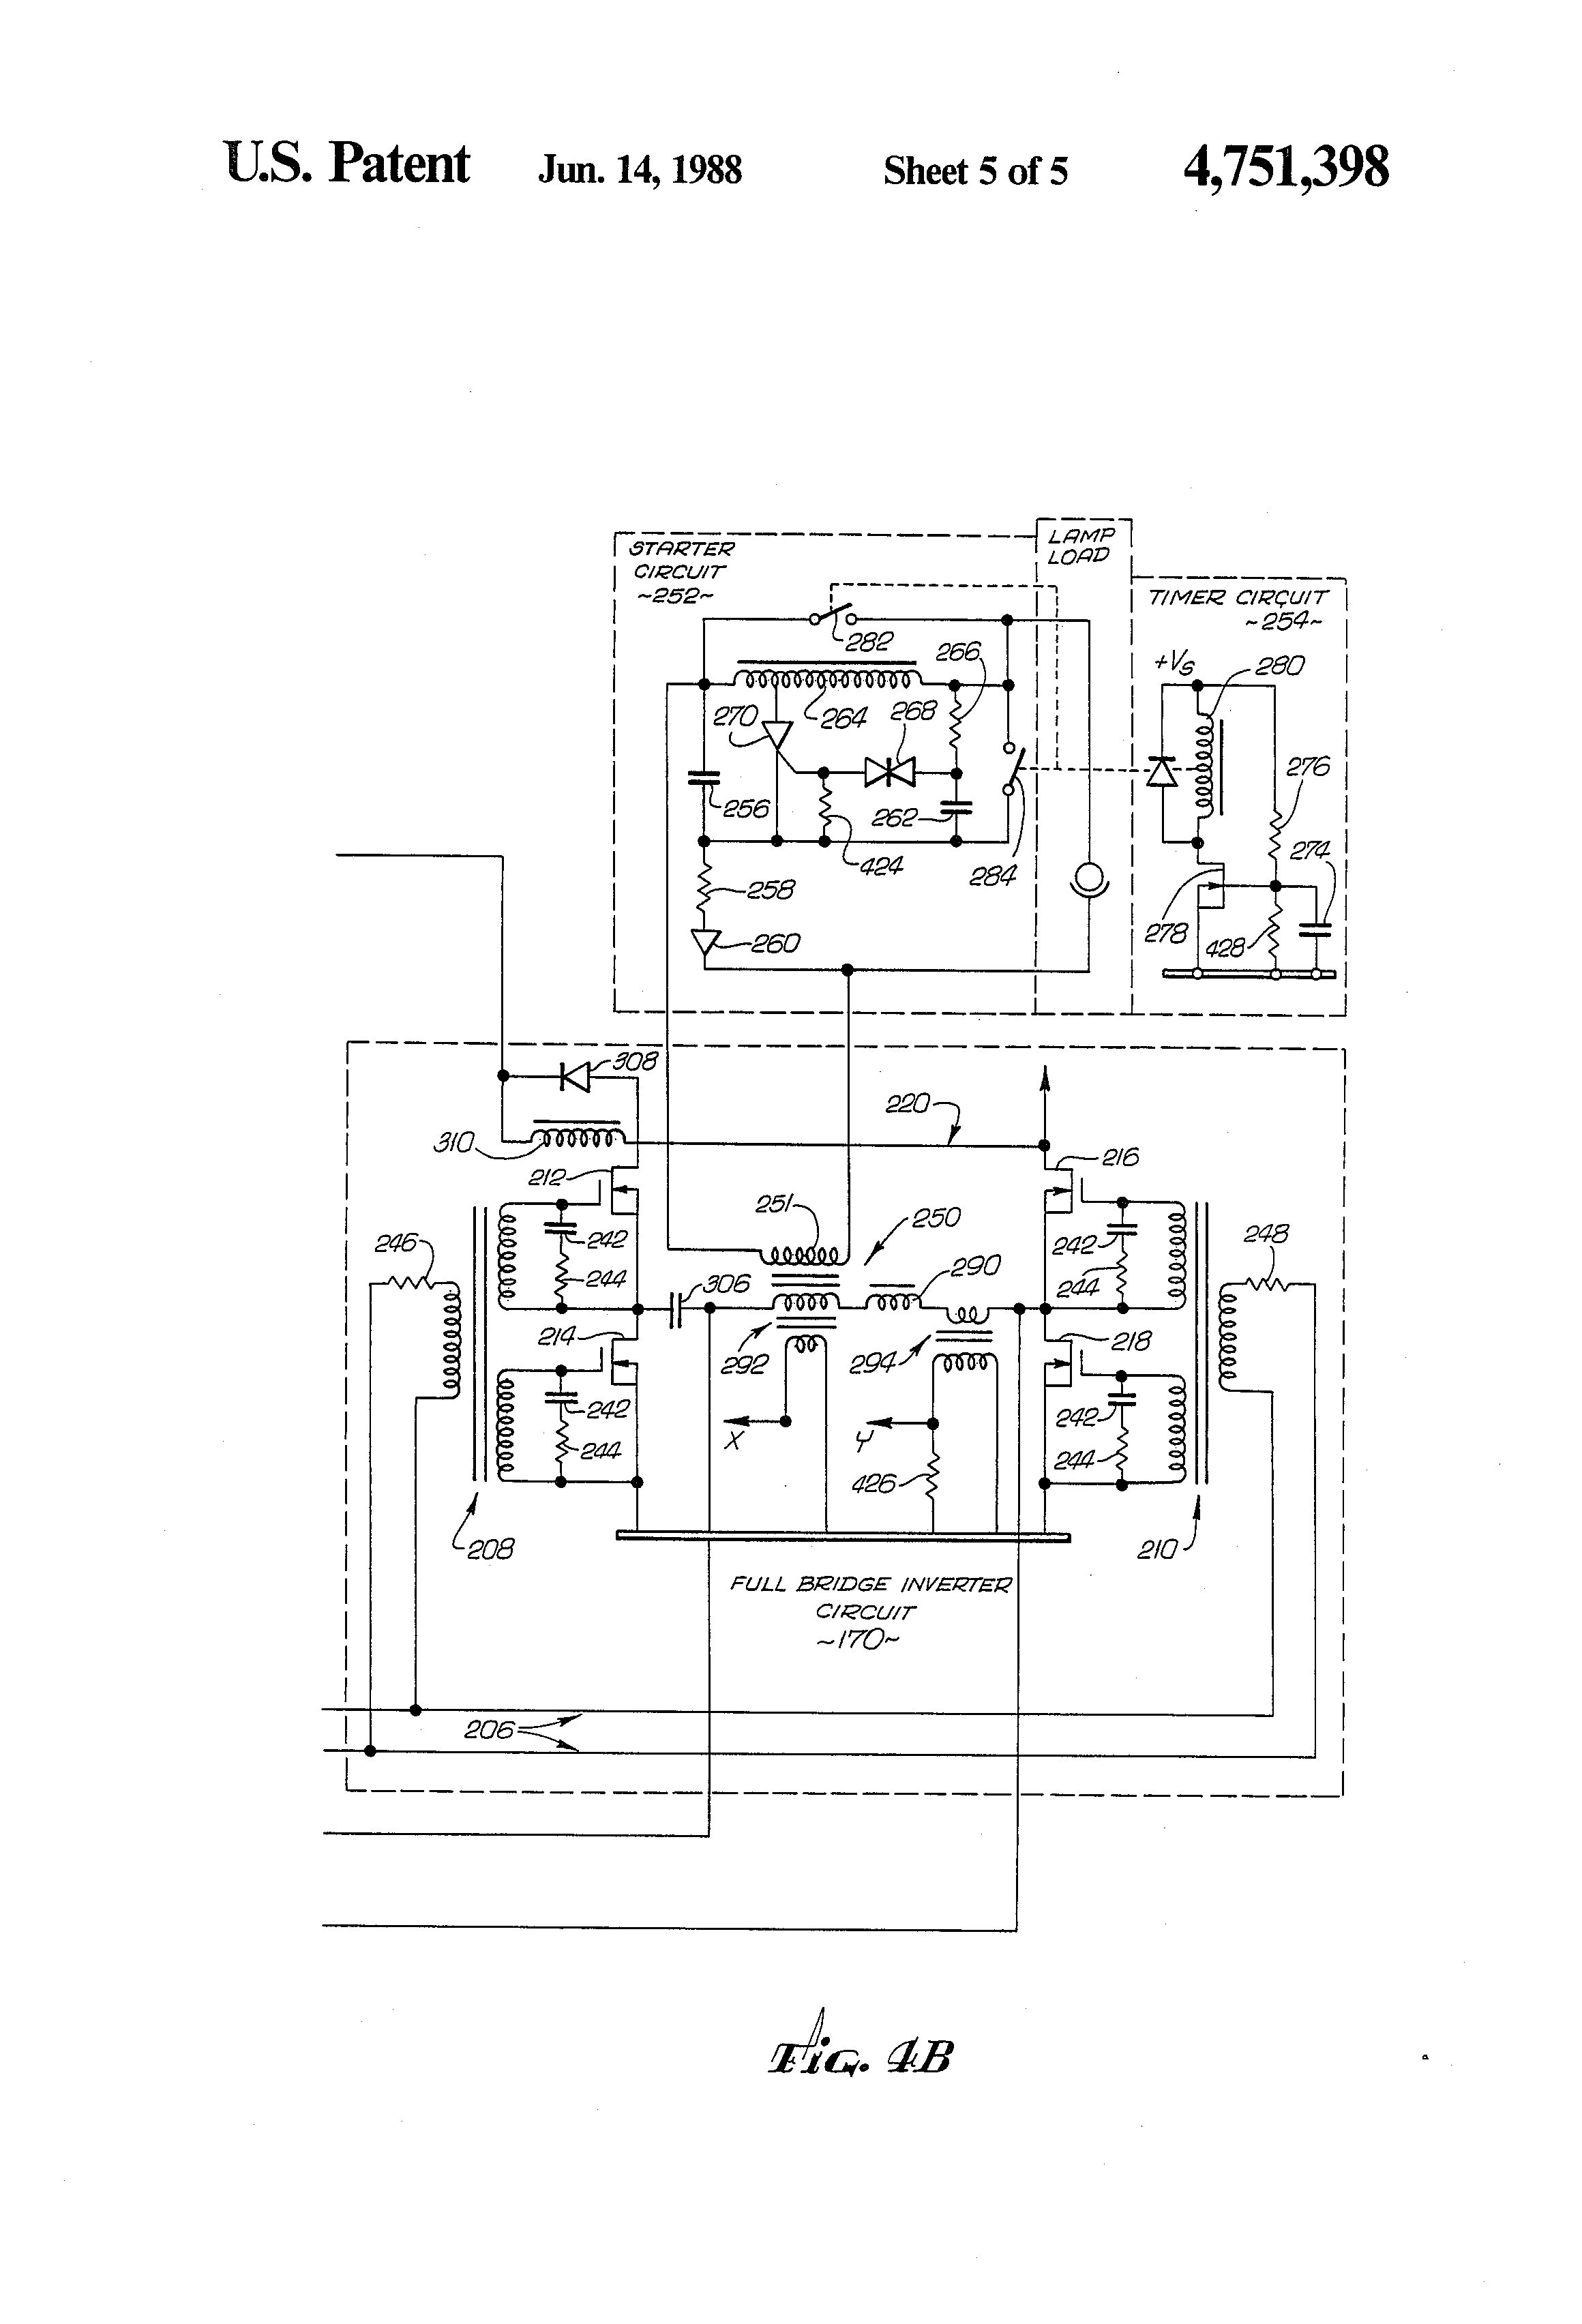 Bodine Emergency Wiring Diagram Libraries Recessed Lighting Schematic Diagrams Third Levelwiring For Light Simple